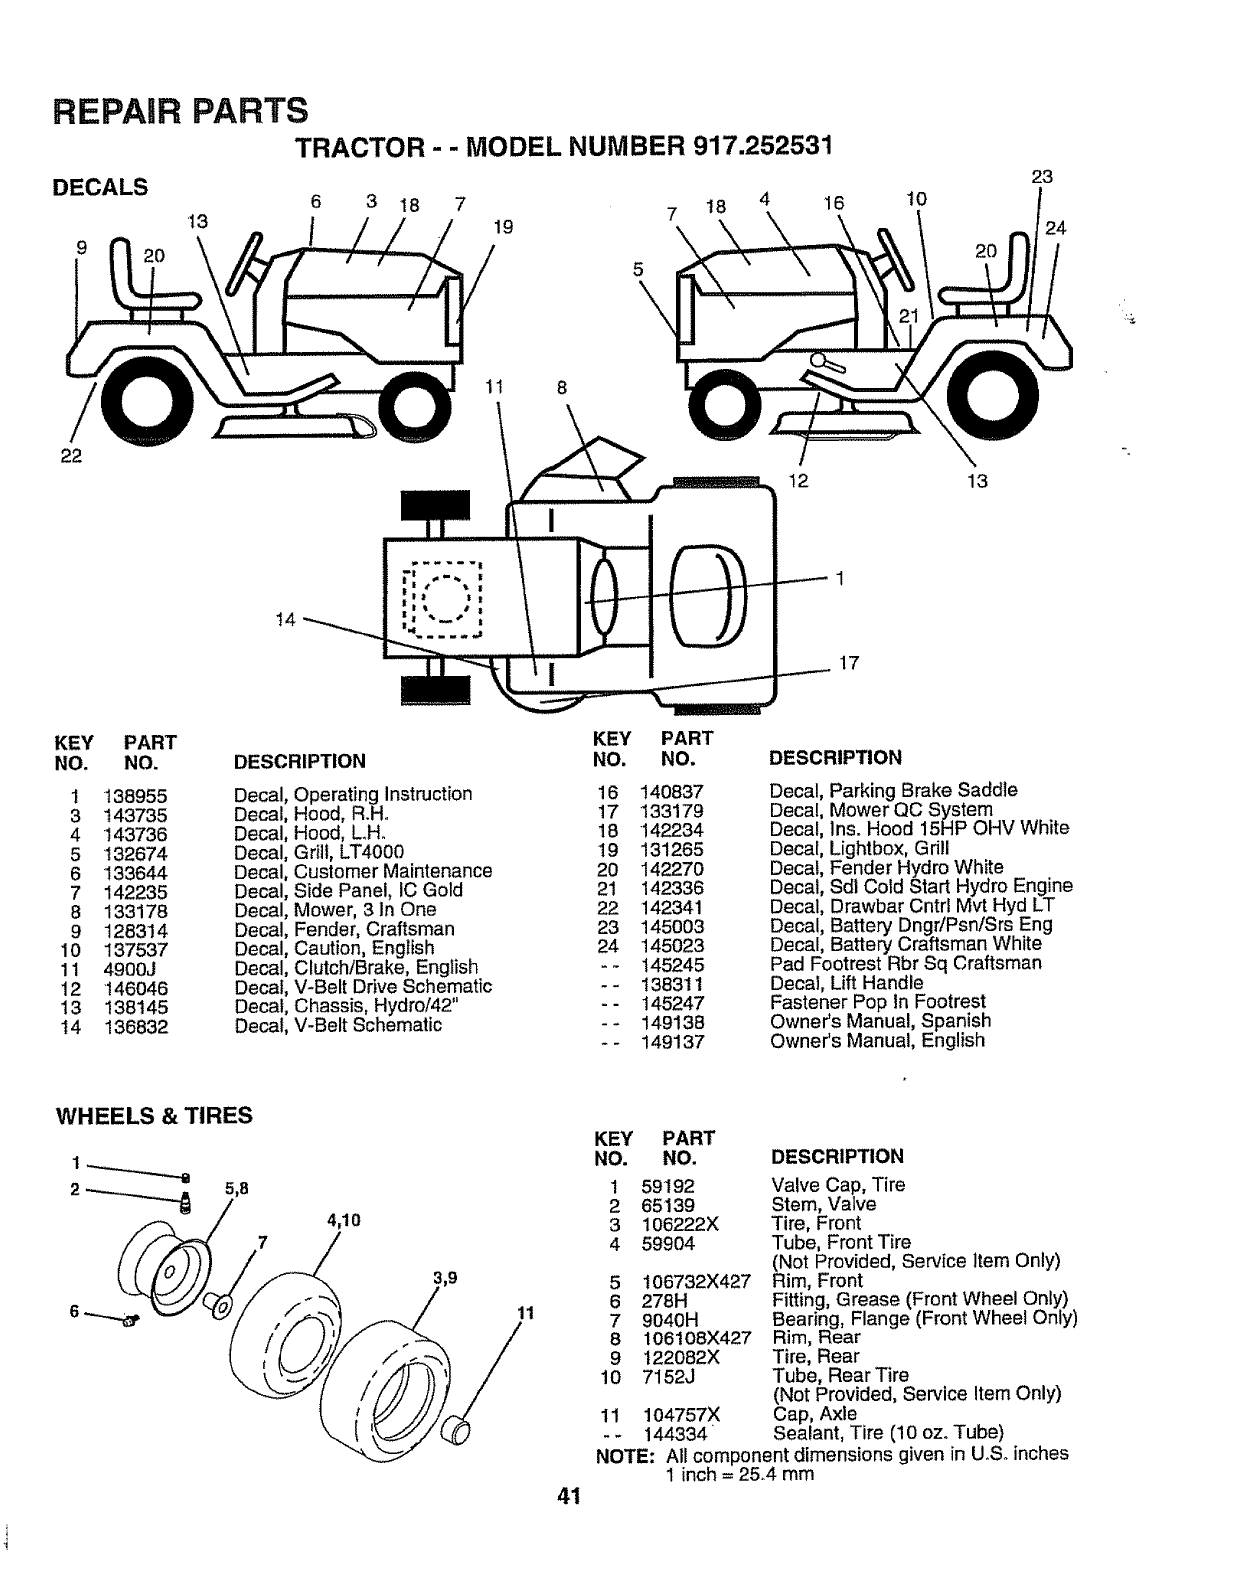 Craftsman 917252531 User Manual Lawn Tractor Manuals And Guides Lt4000 Wiring Diagram Repair